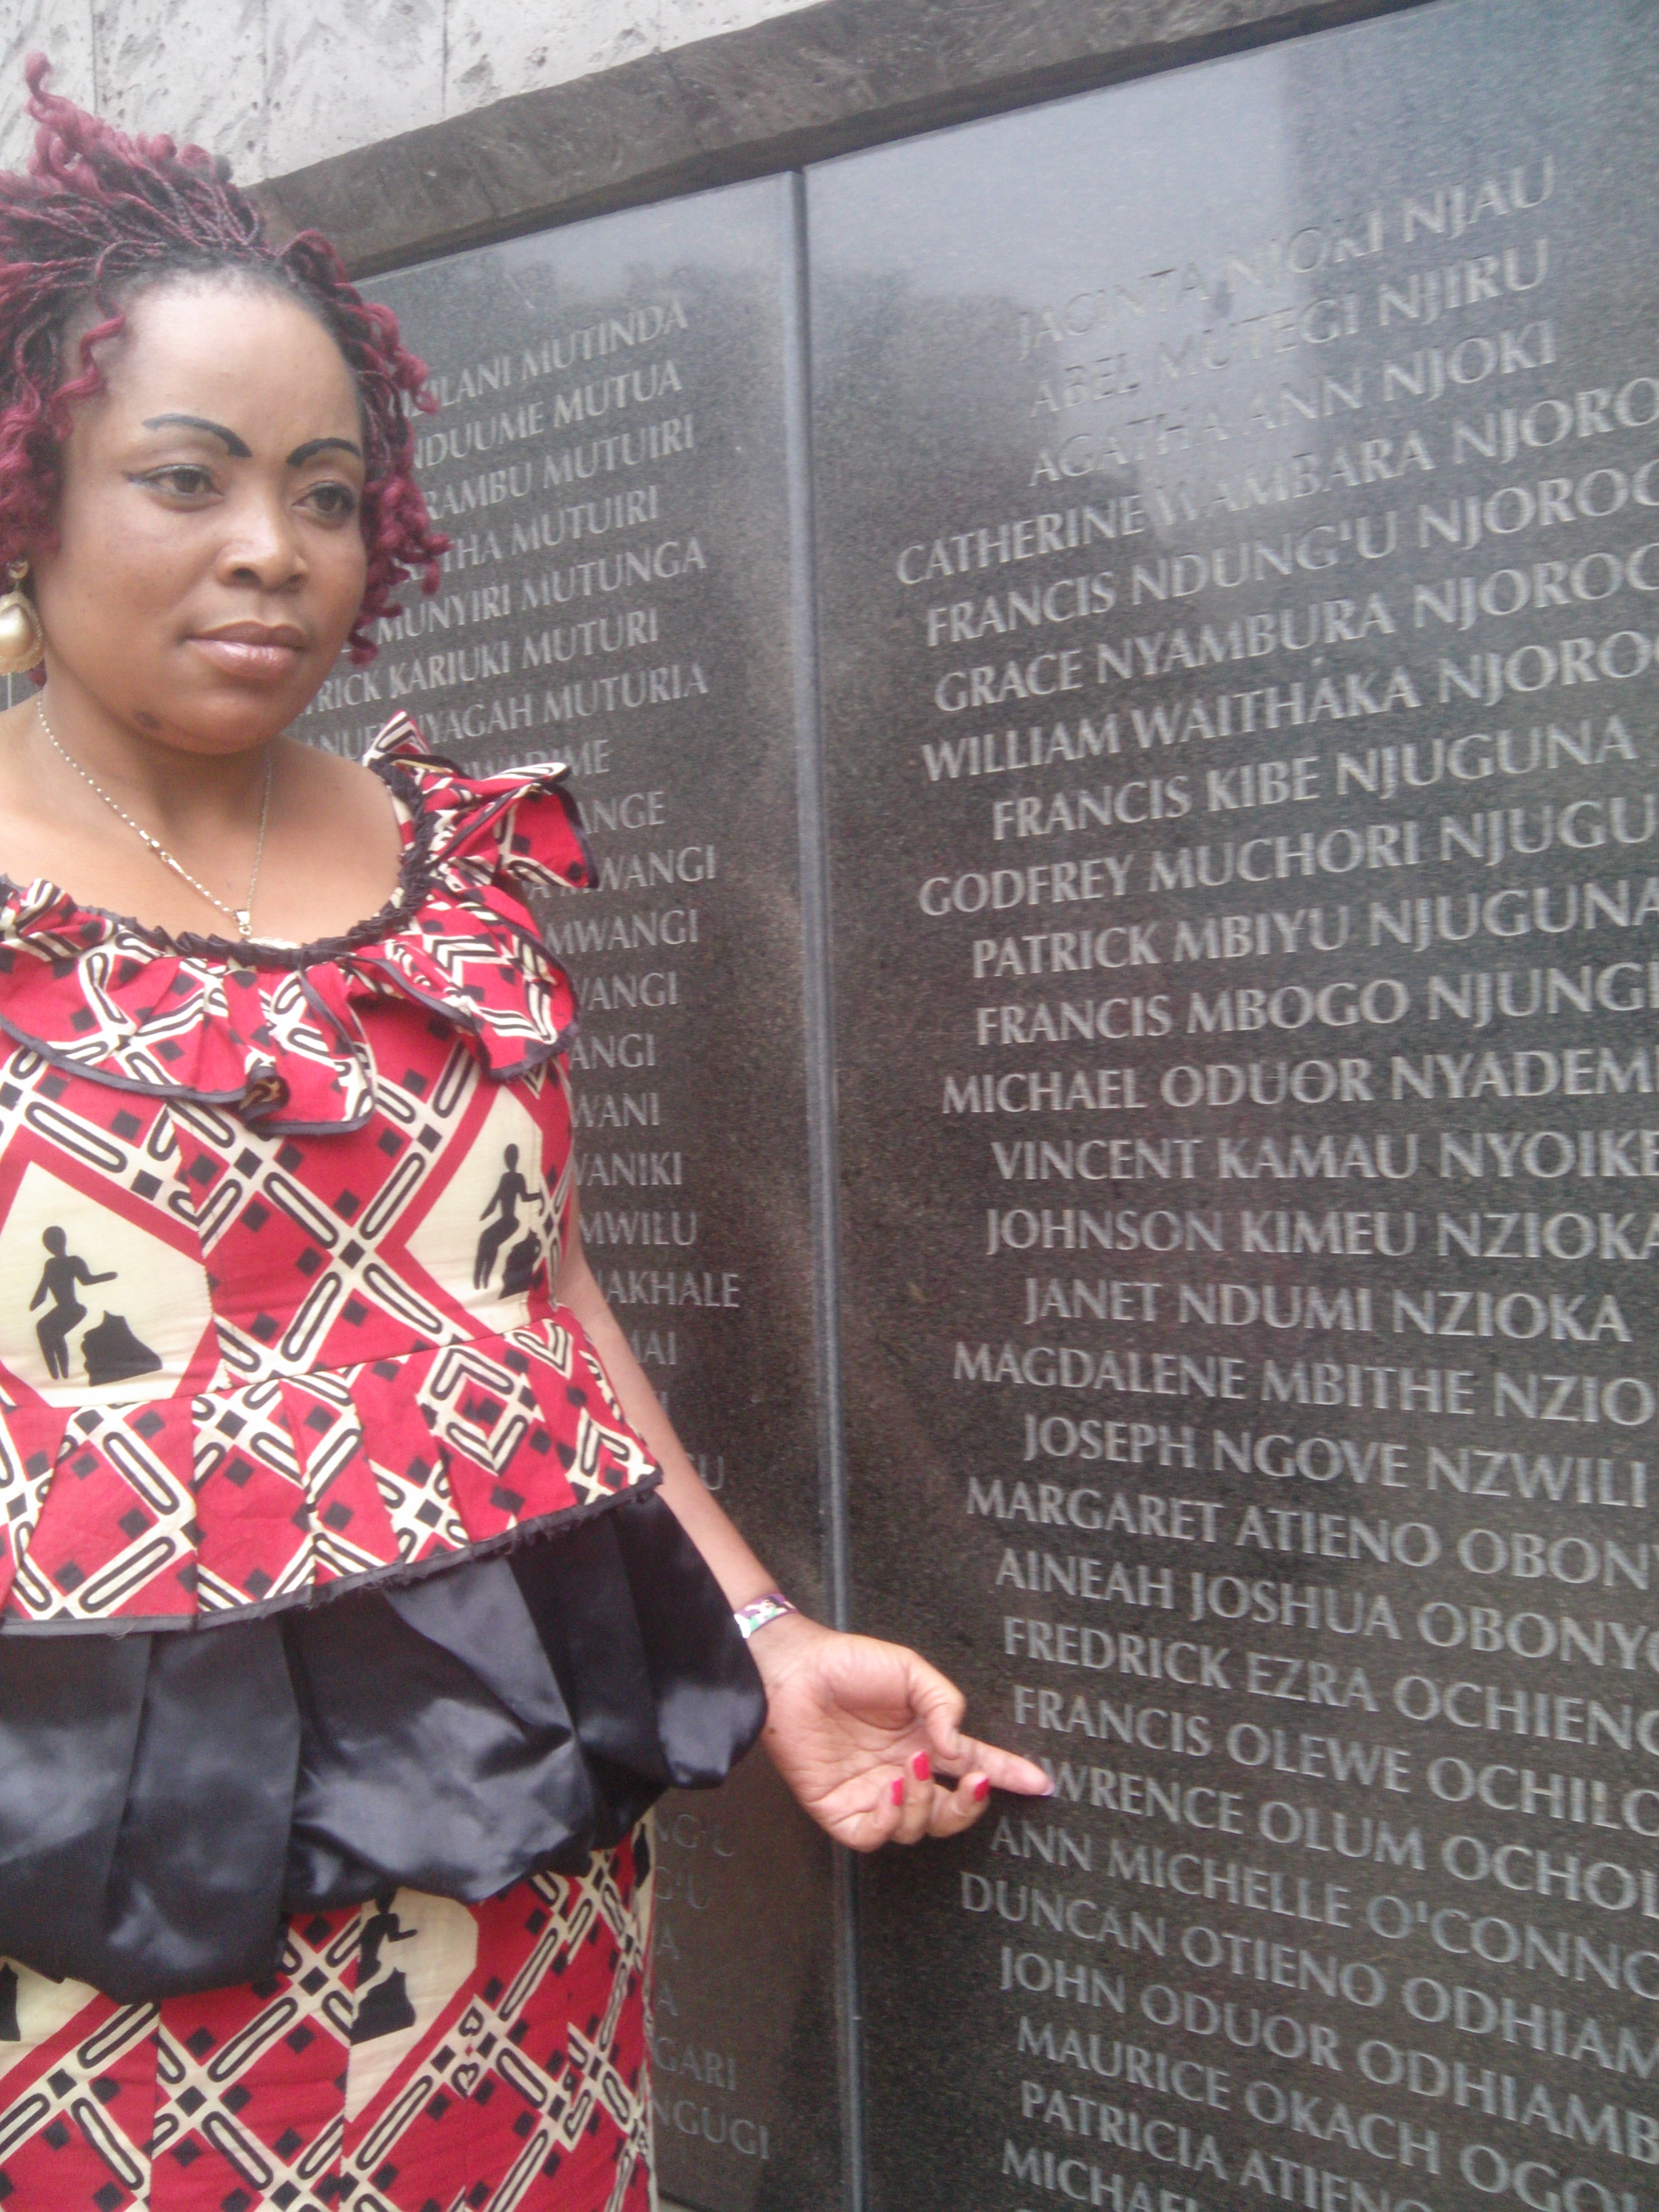 Pamela-Olum-points-at-her-late-husbands-name-at-the-1998-Bomb-blast-Memorial-Park-in-Nairobi-Her-husband-died-at-the-bomb-blast-PHOTO-BY-LILIAN-KAIVILU.jpg